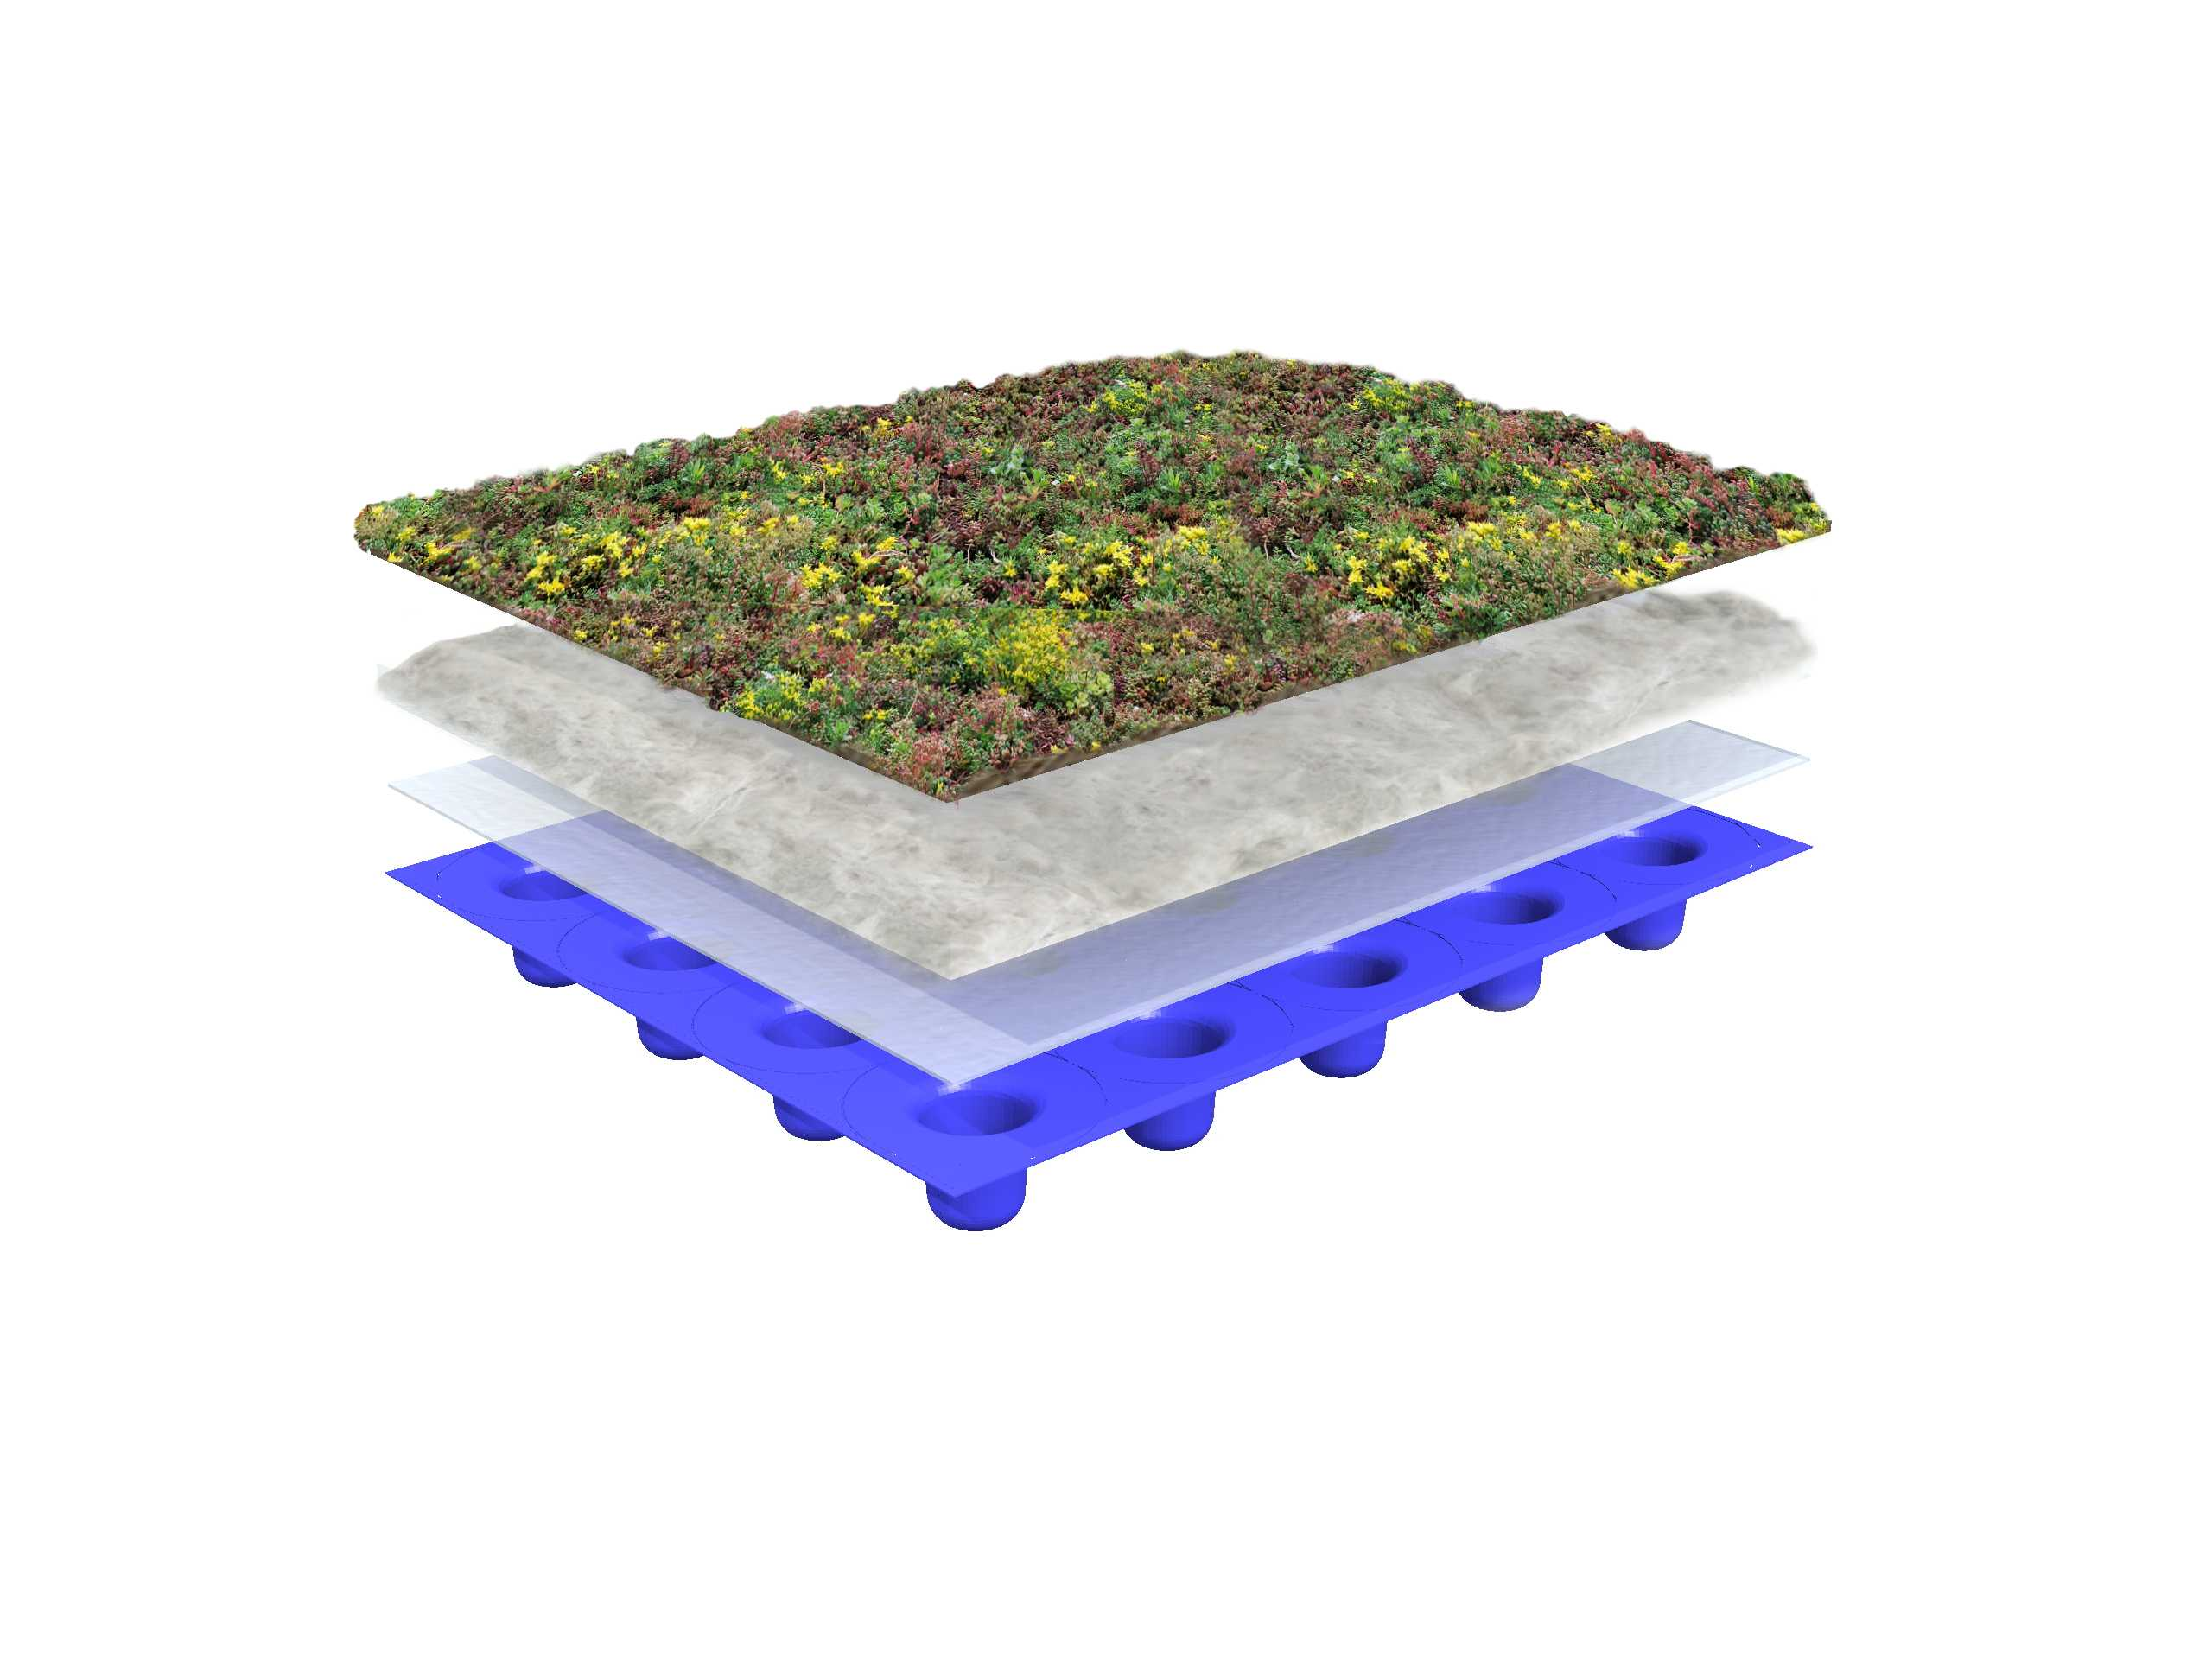 System structure lightweight green roof 0-15 degrees